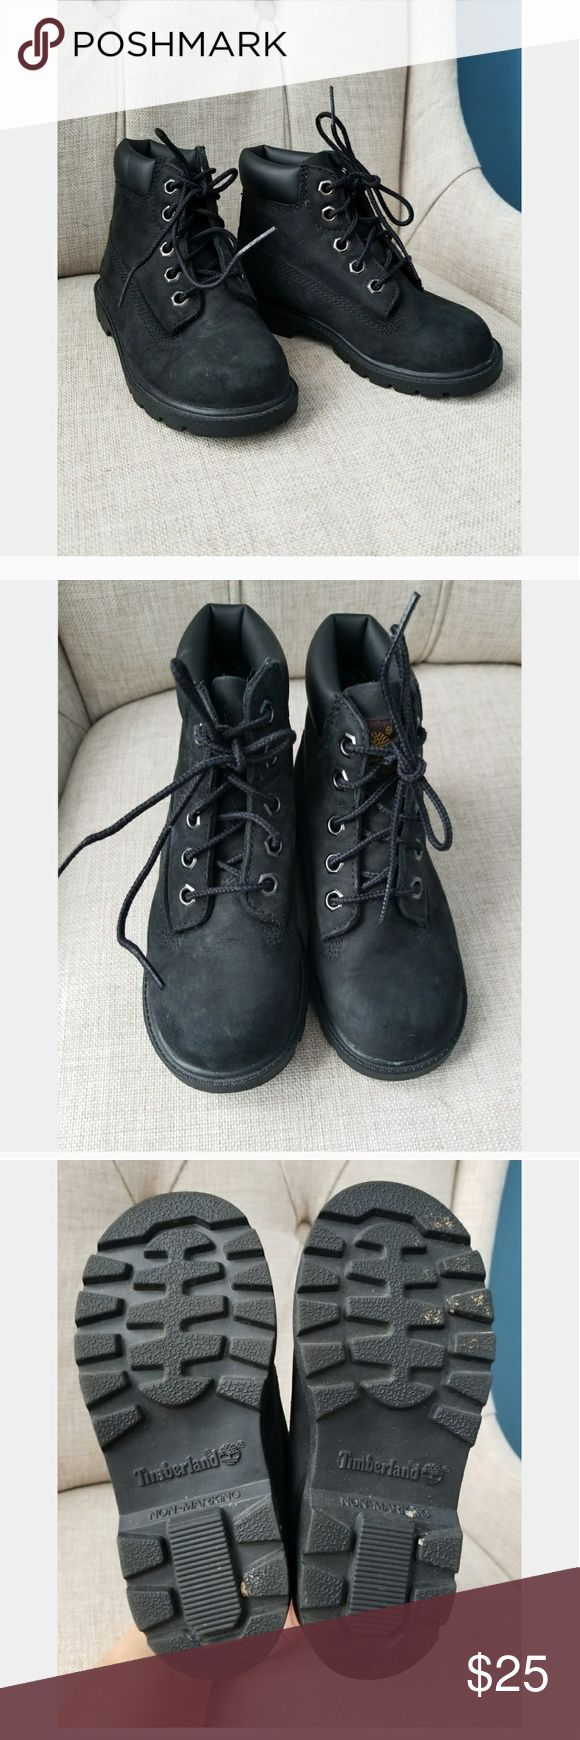 Toddler Timberland Boots Black. EUC. No major flaws. Worn a handful of times before they got too small. Timberland Shoes Boots